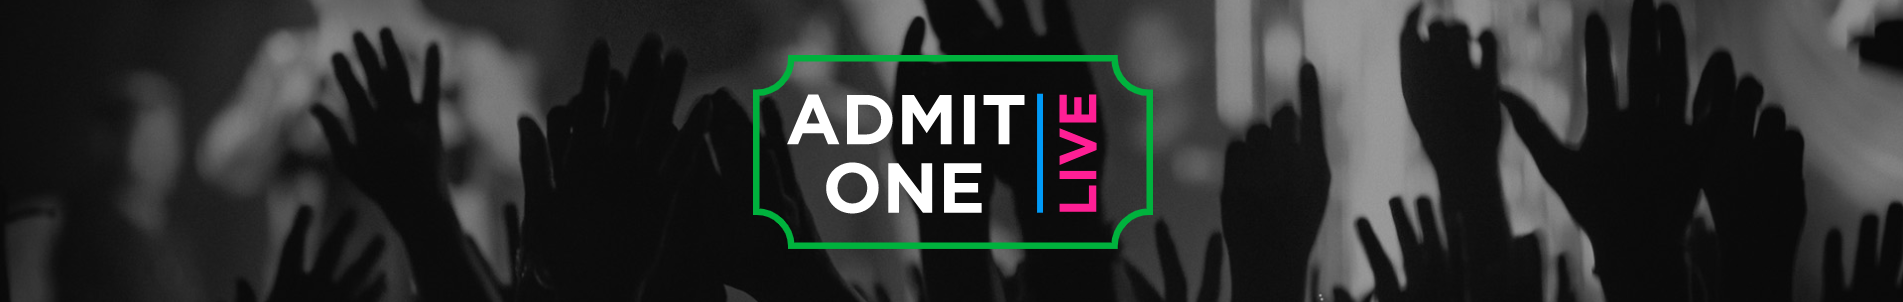 Tickets for MRG Live Presents: Deafheaven in Vancouver from Admit One Live